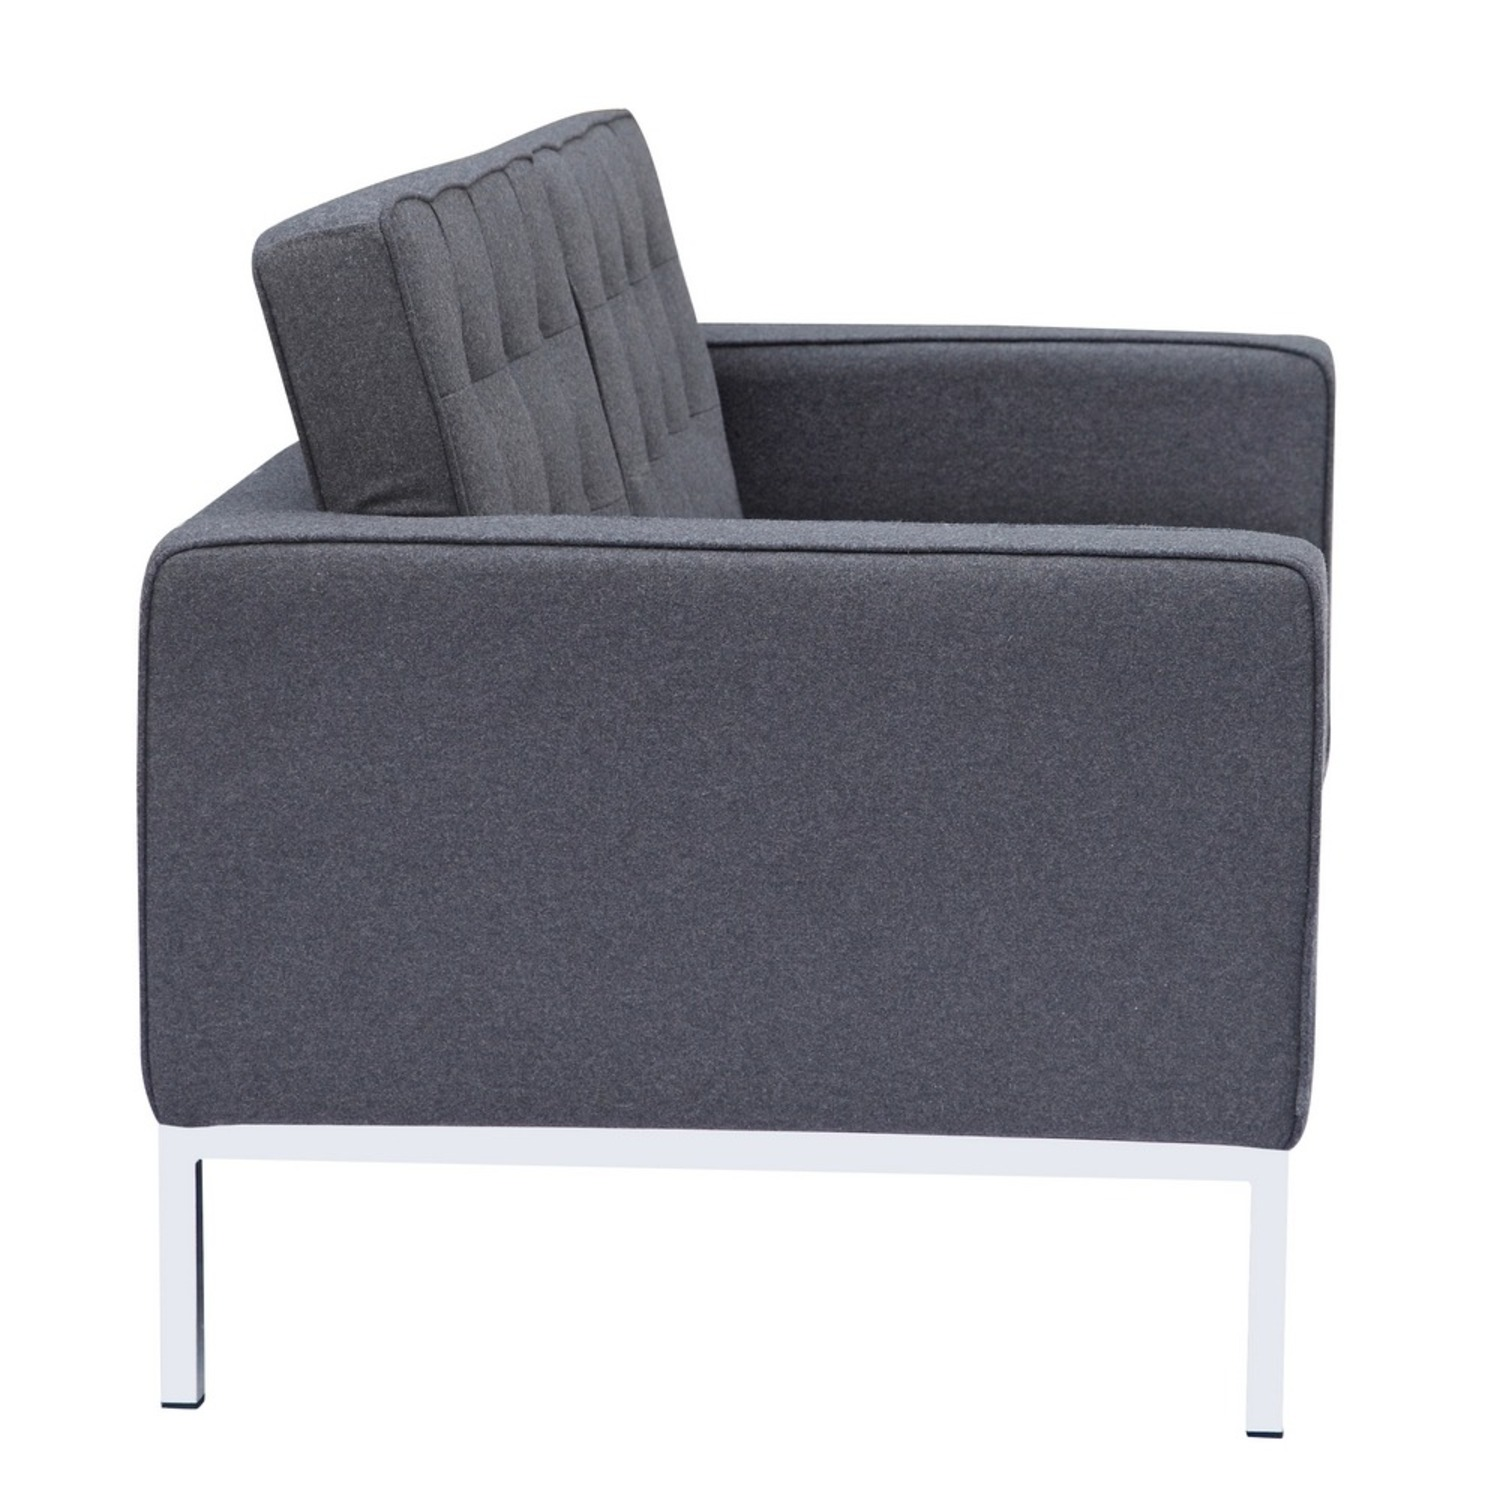 Contemporary Loveseat In Gray Wool Fabric - image-1